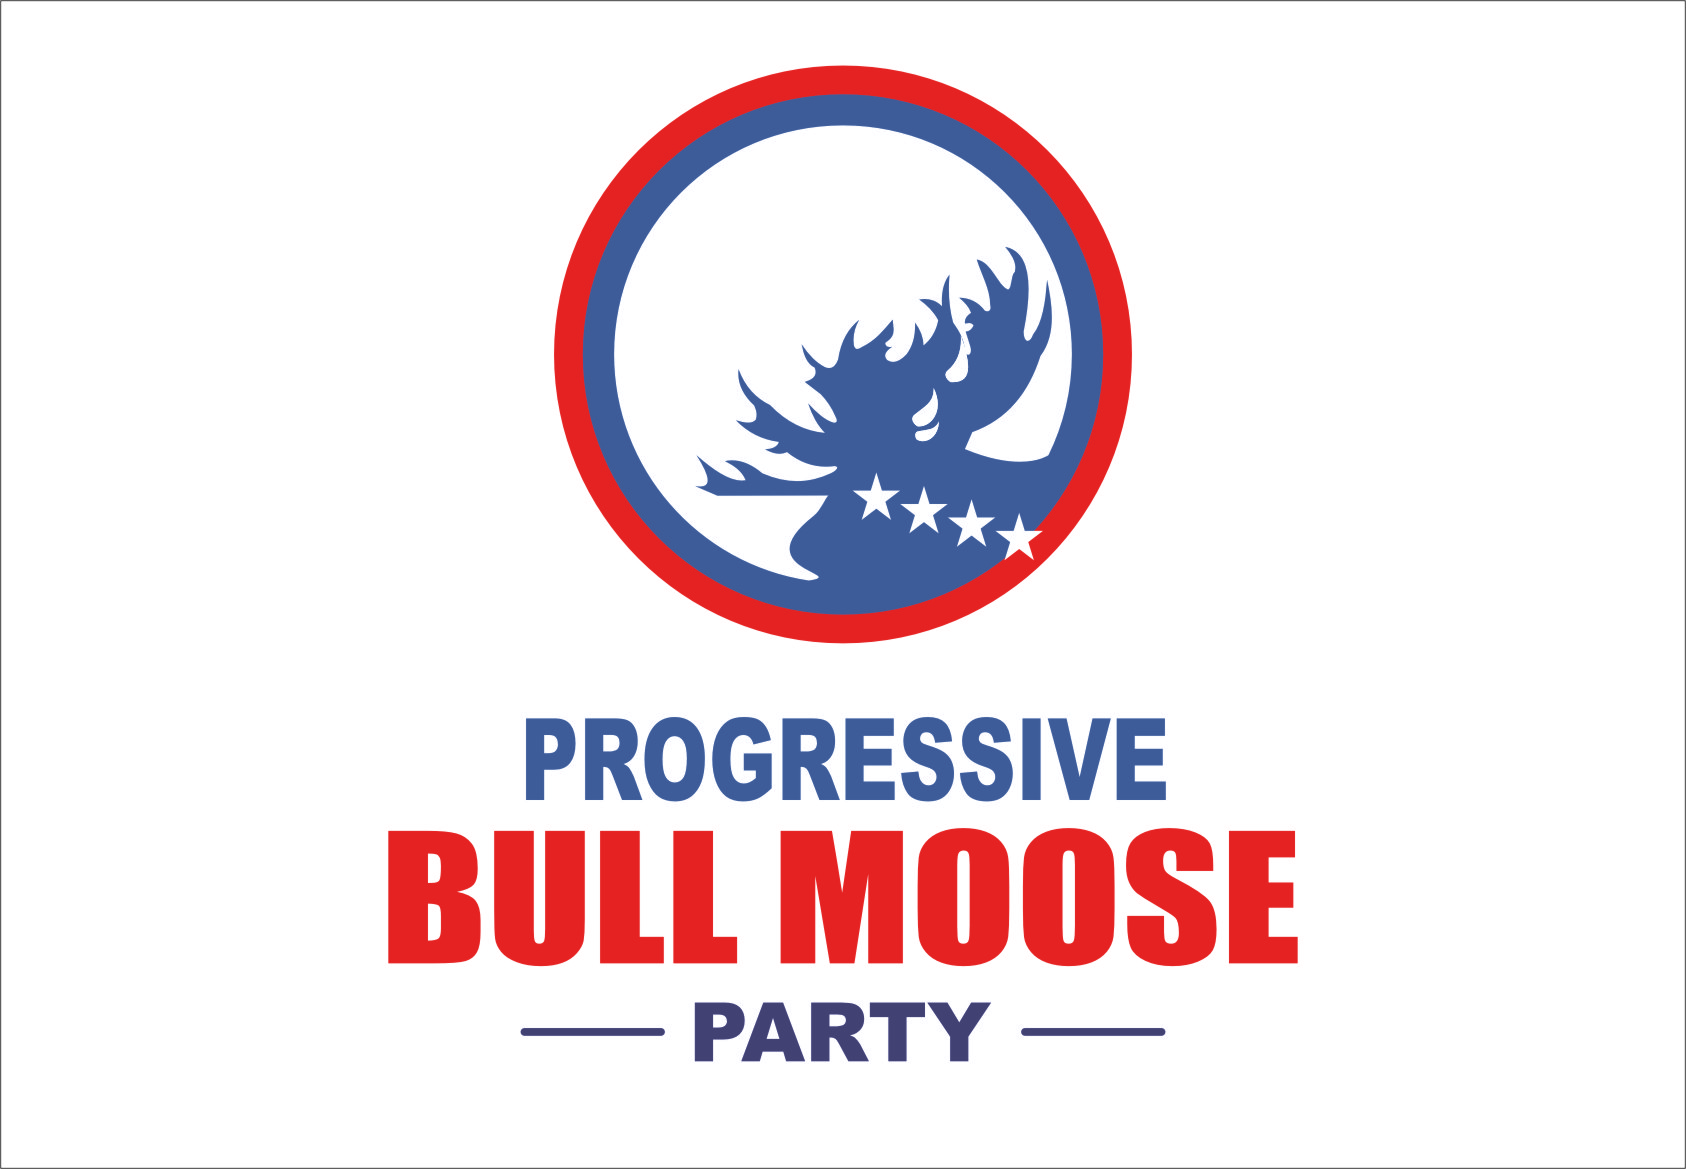 Logo Design by Ngepet_art - Entry No. 97 in the Logo Design Contest Progressive Bull Moose Party Logo Design.